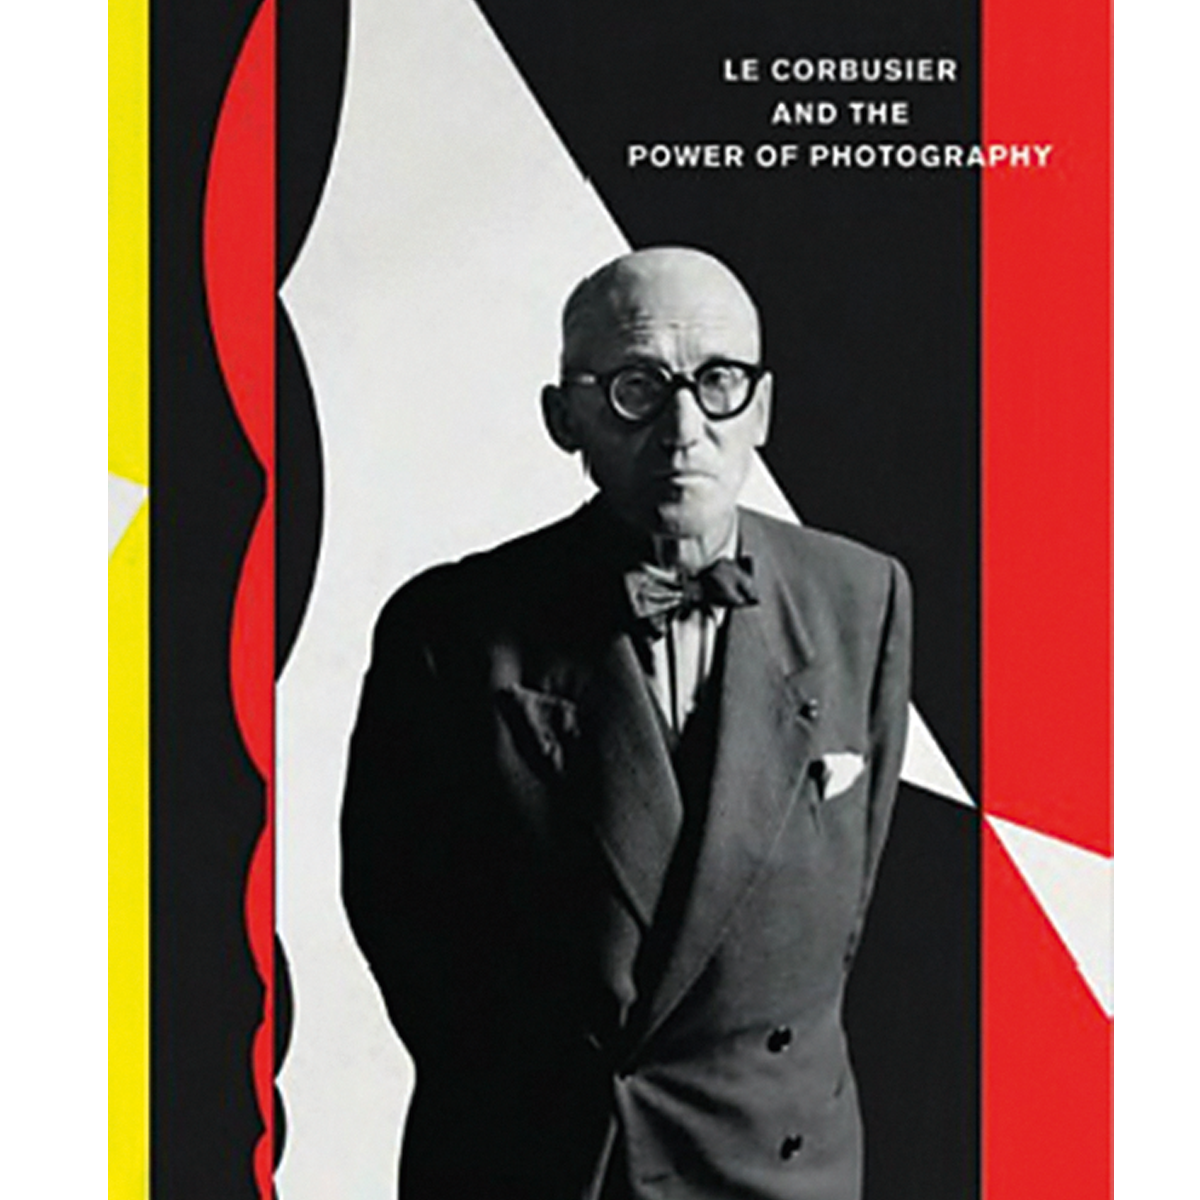 Le Corbusier and the Power of Photography